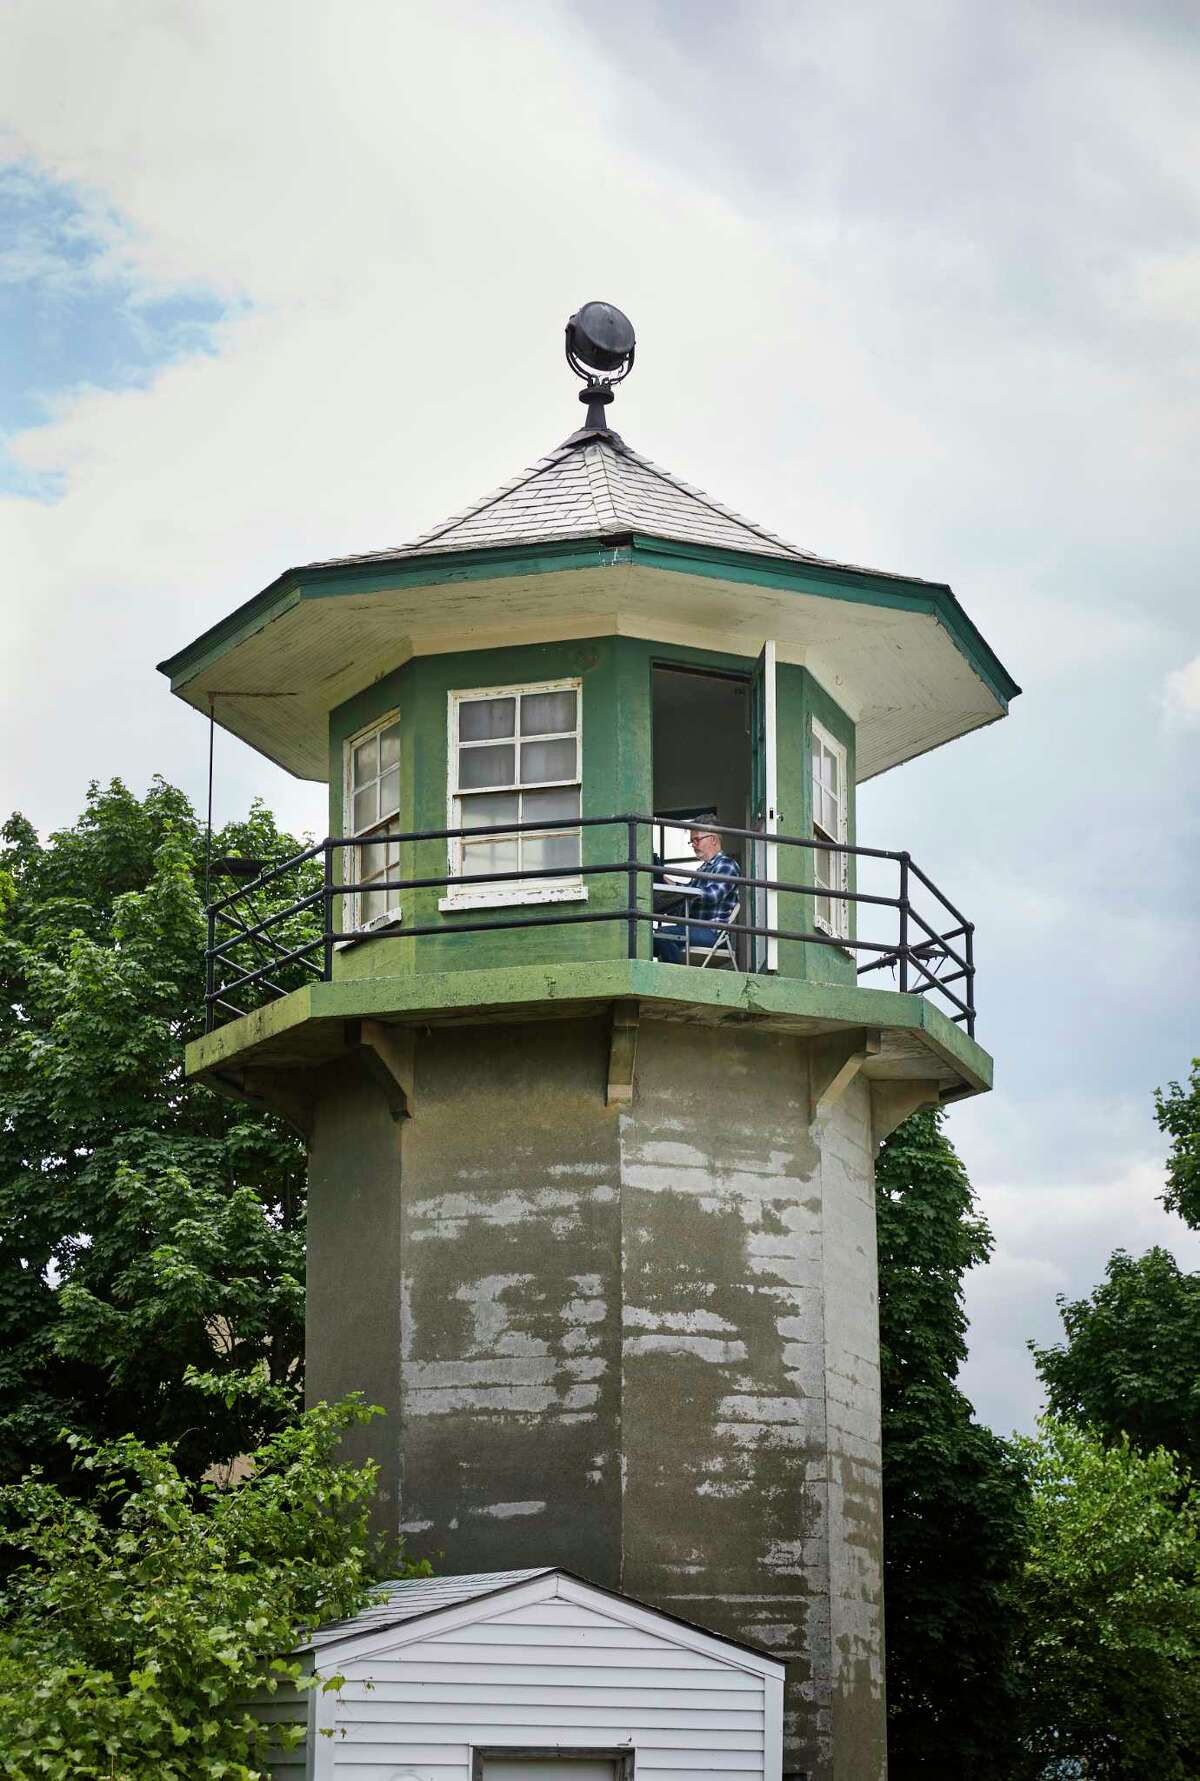 Tim Youd retyping John Cheever's Falconer in a decommissioned guard tower at Sing Sing Prison in Ossining, N.Y. (Provided photo)